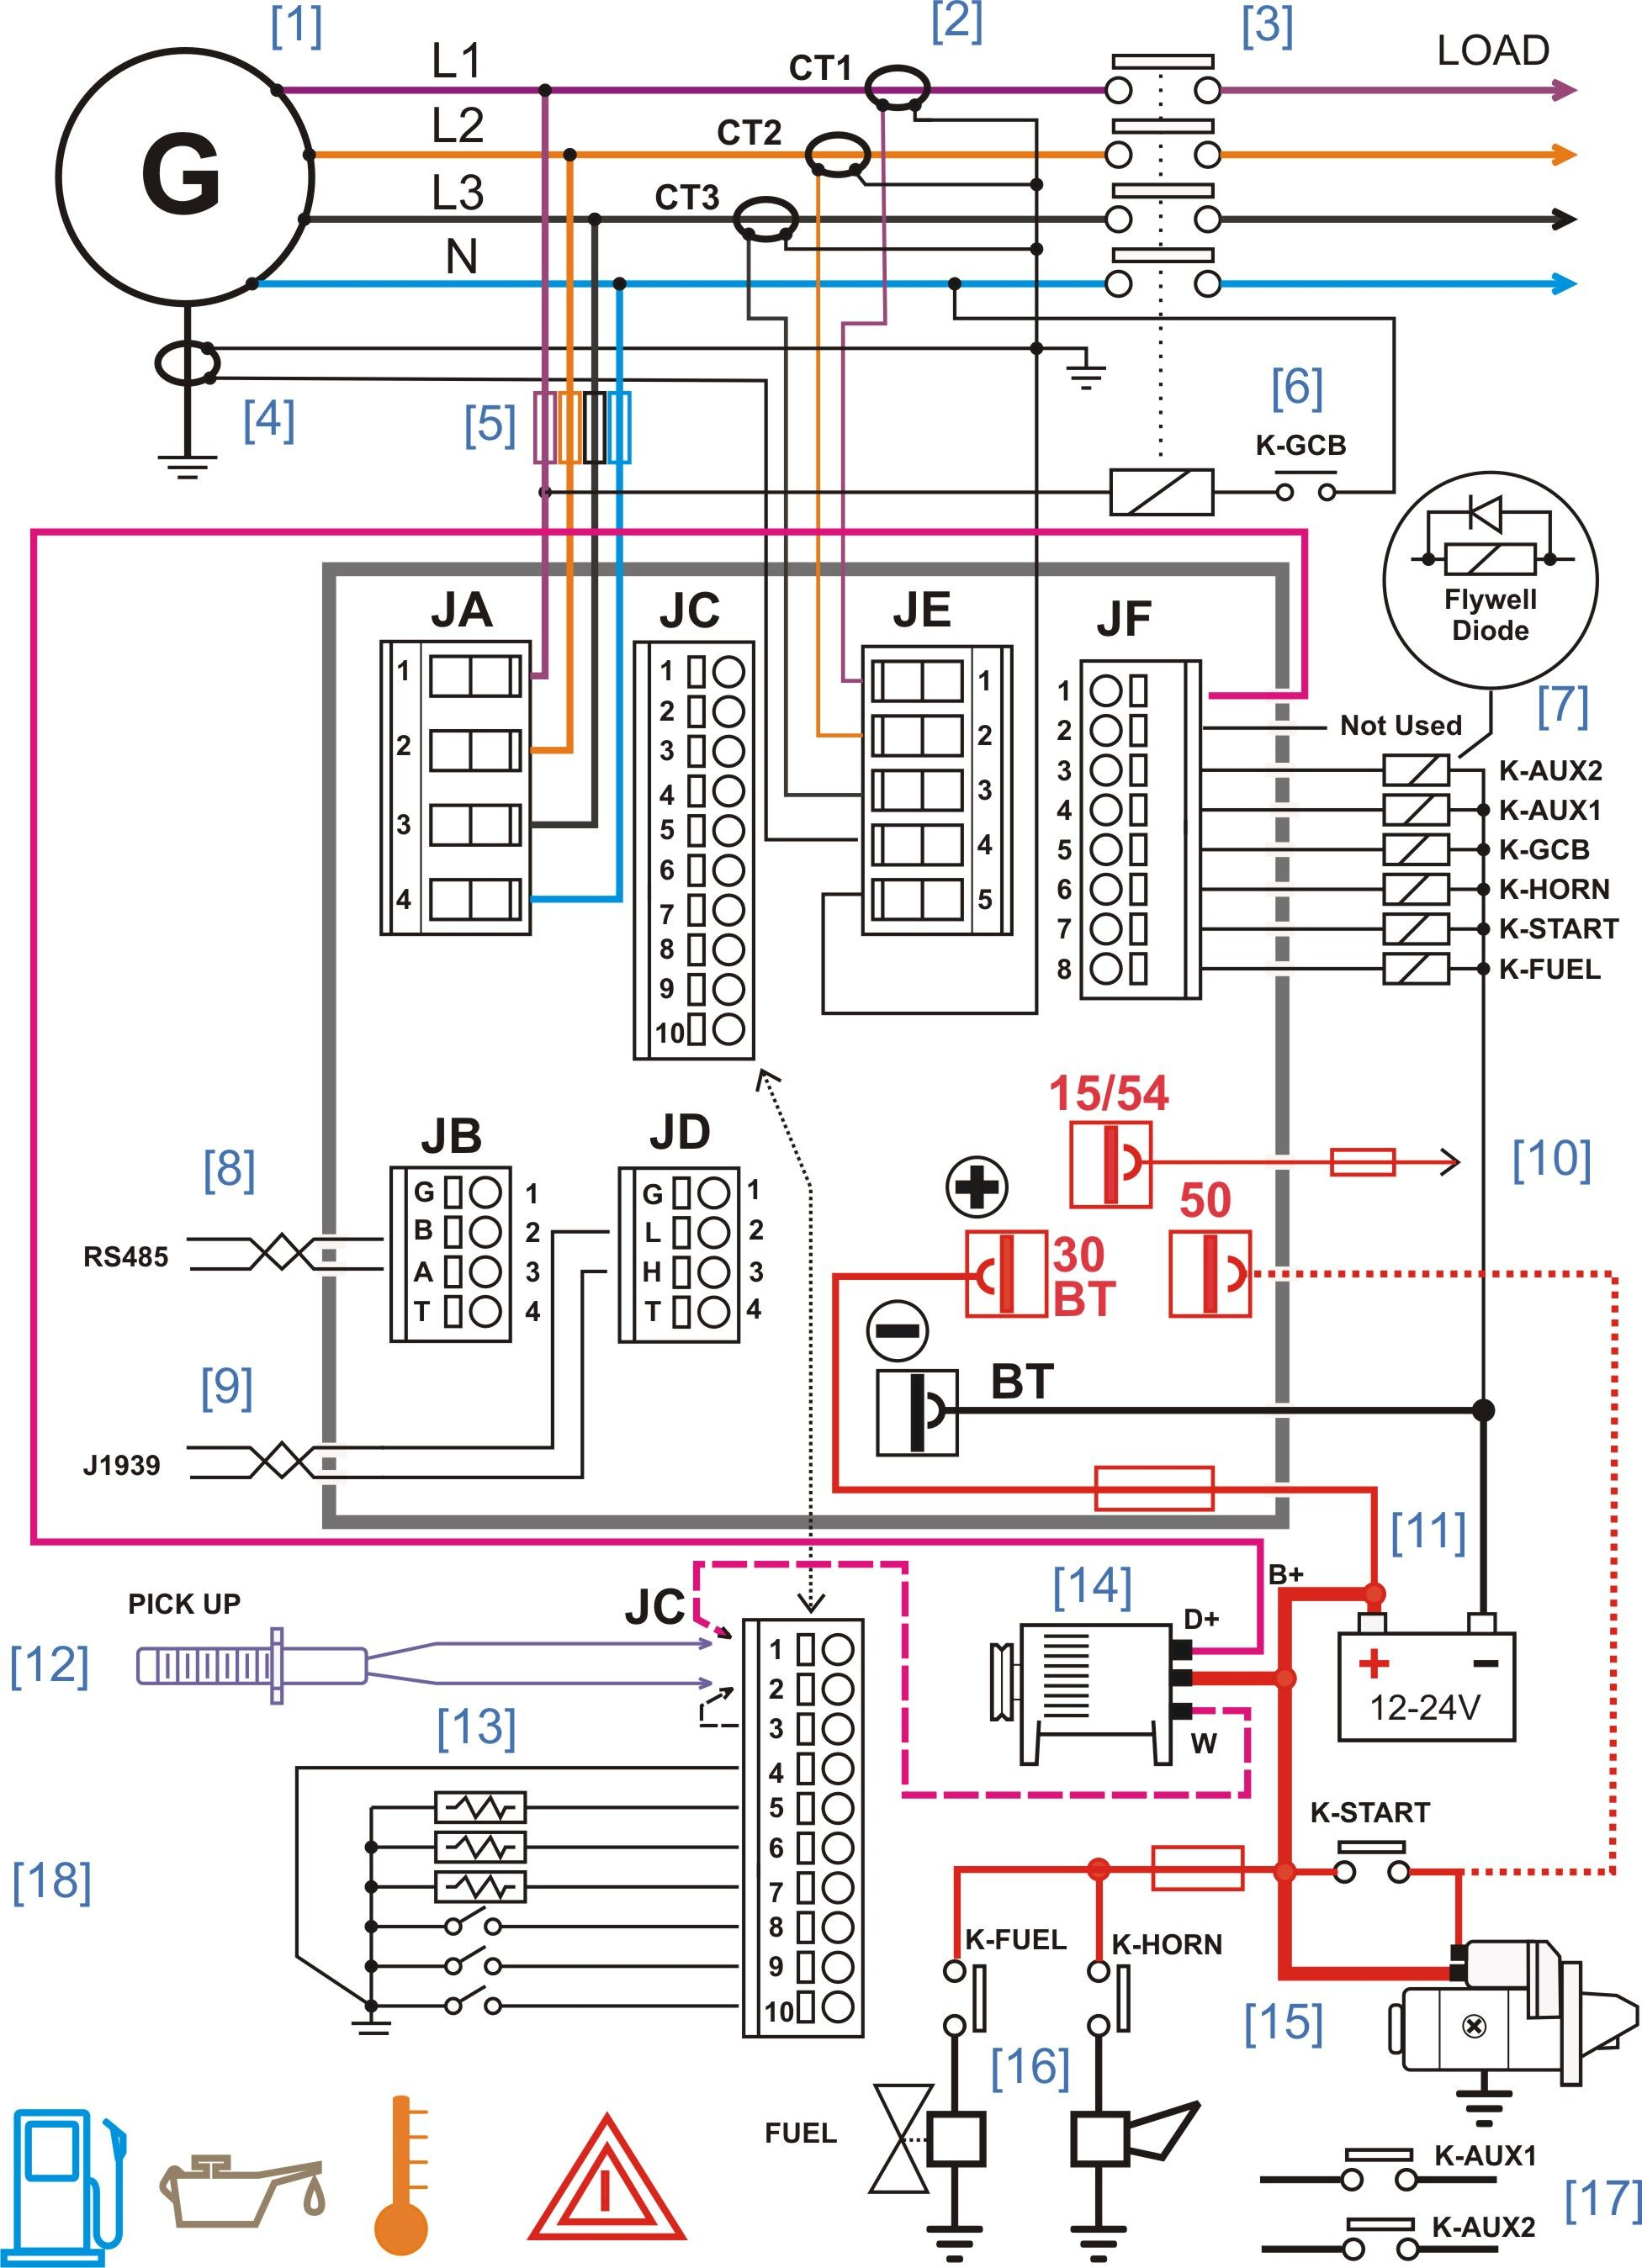 Electrical Control Panel Wiring Diagram - Diesel Generator Control Panel Wiring Diagram 6h